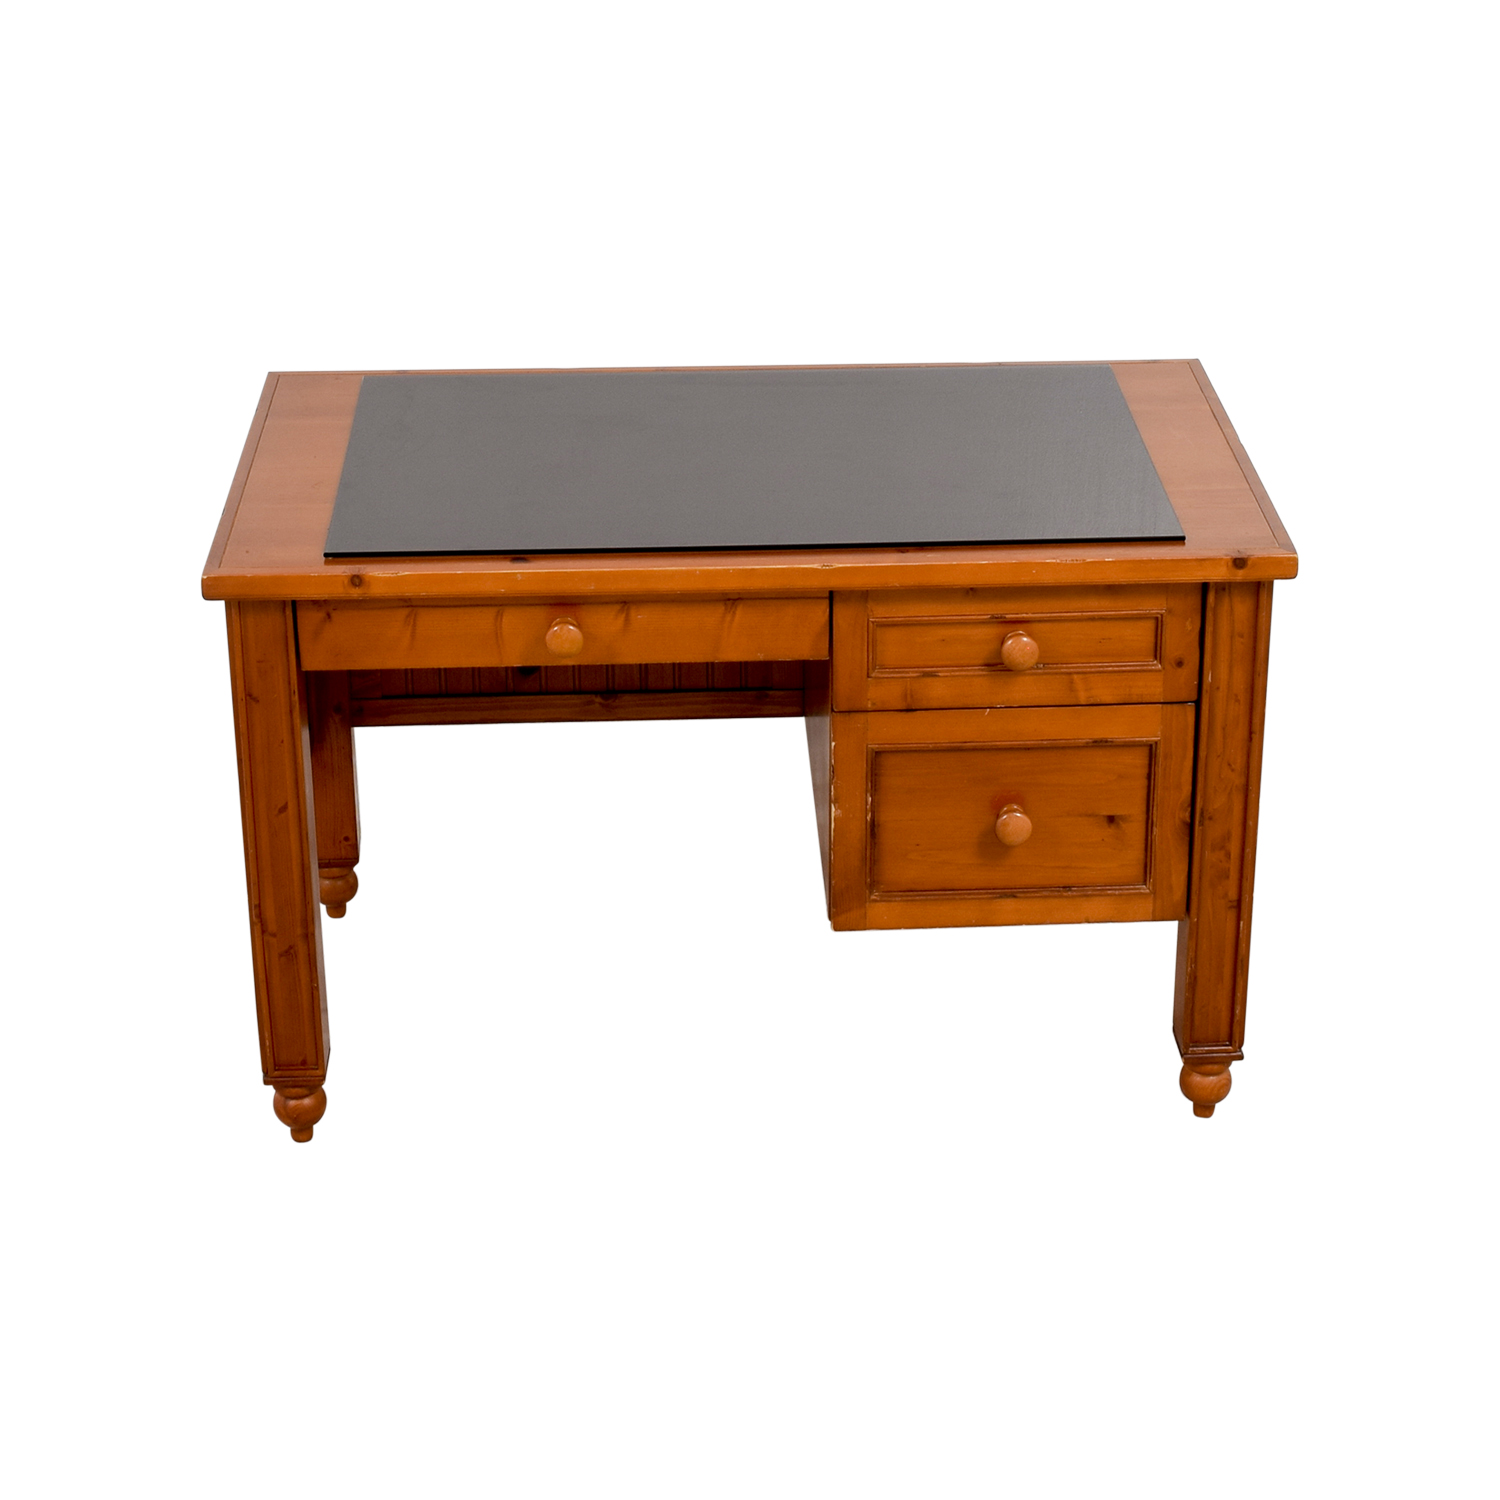 Pottery Barn Pottery Barn Solid Wood Desk Brown